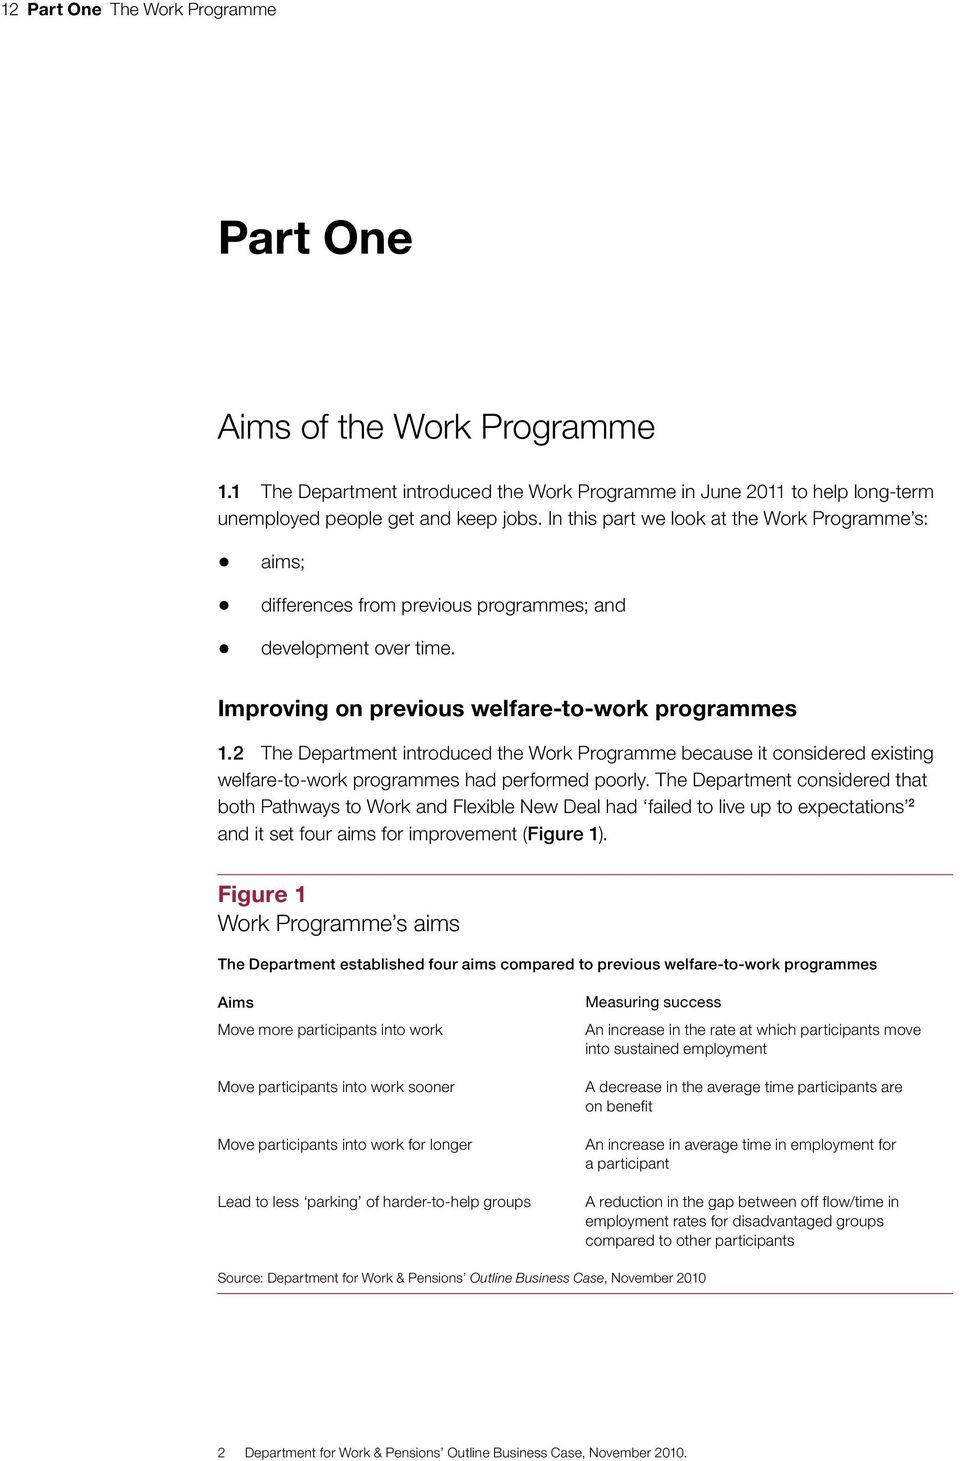 2 The Department introduced the Work Programme because it considered existing welfare-to-work programmes had performed poorly.